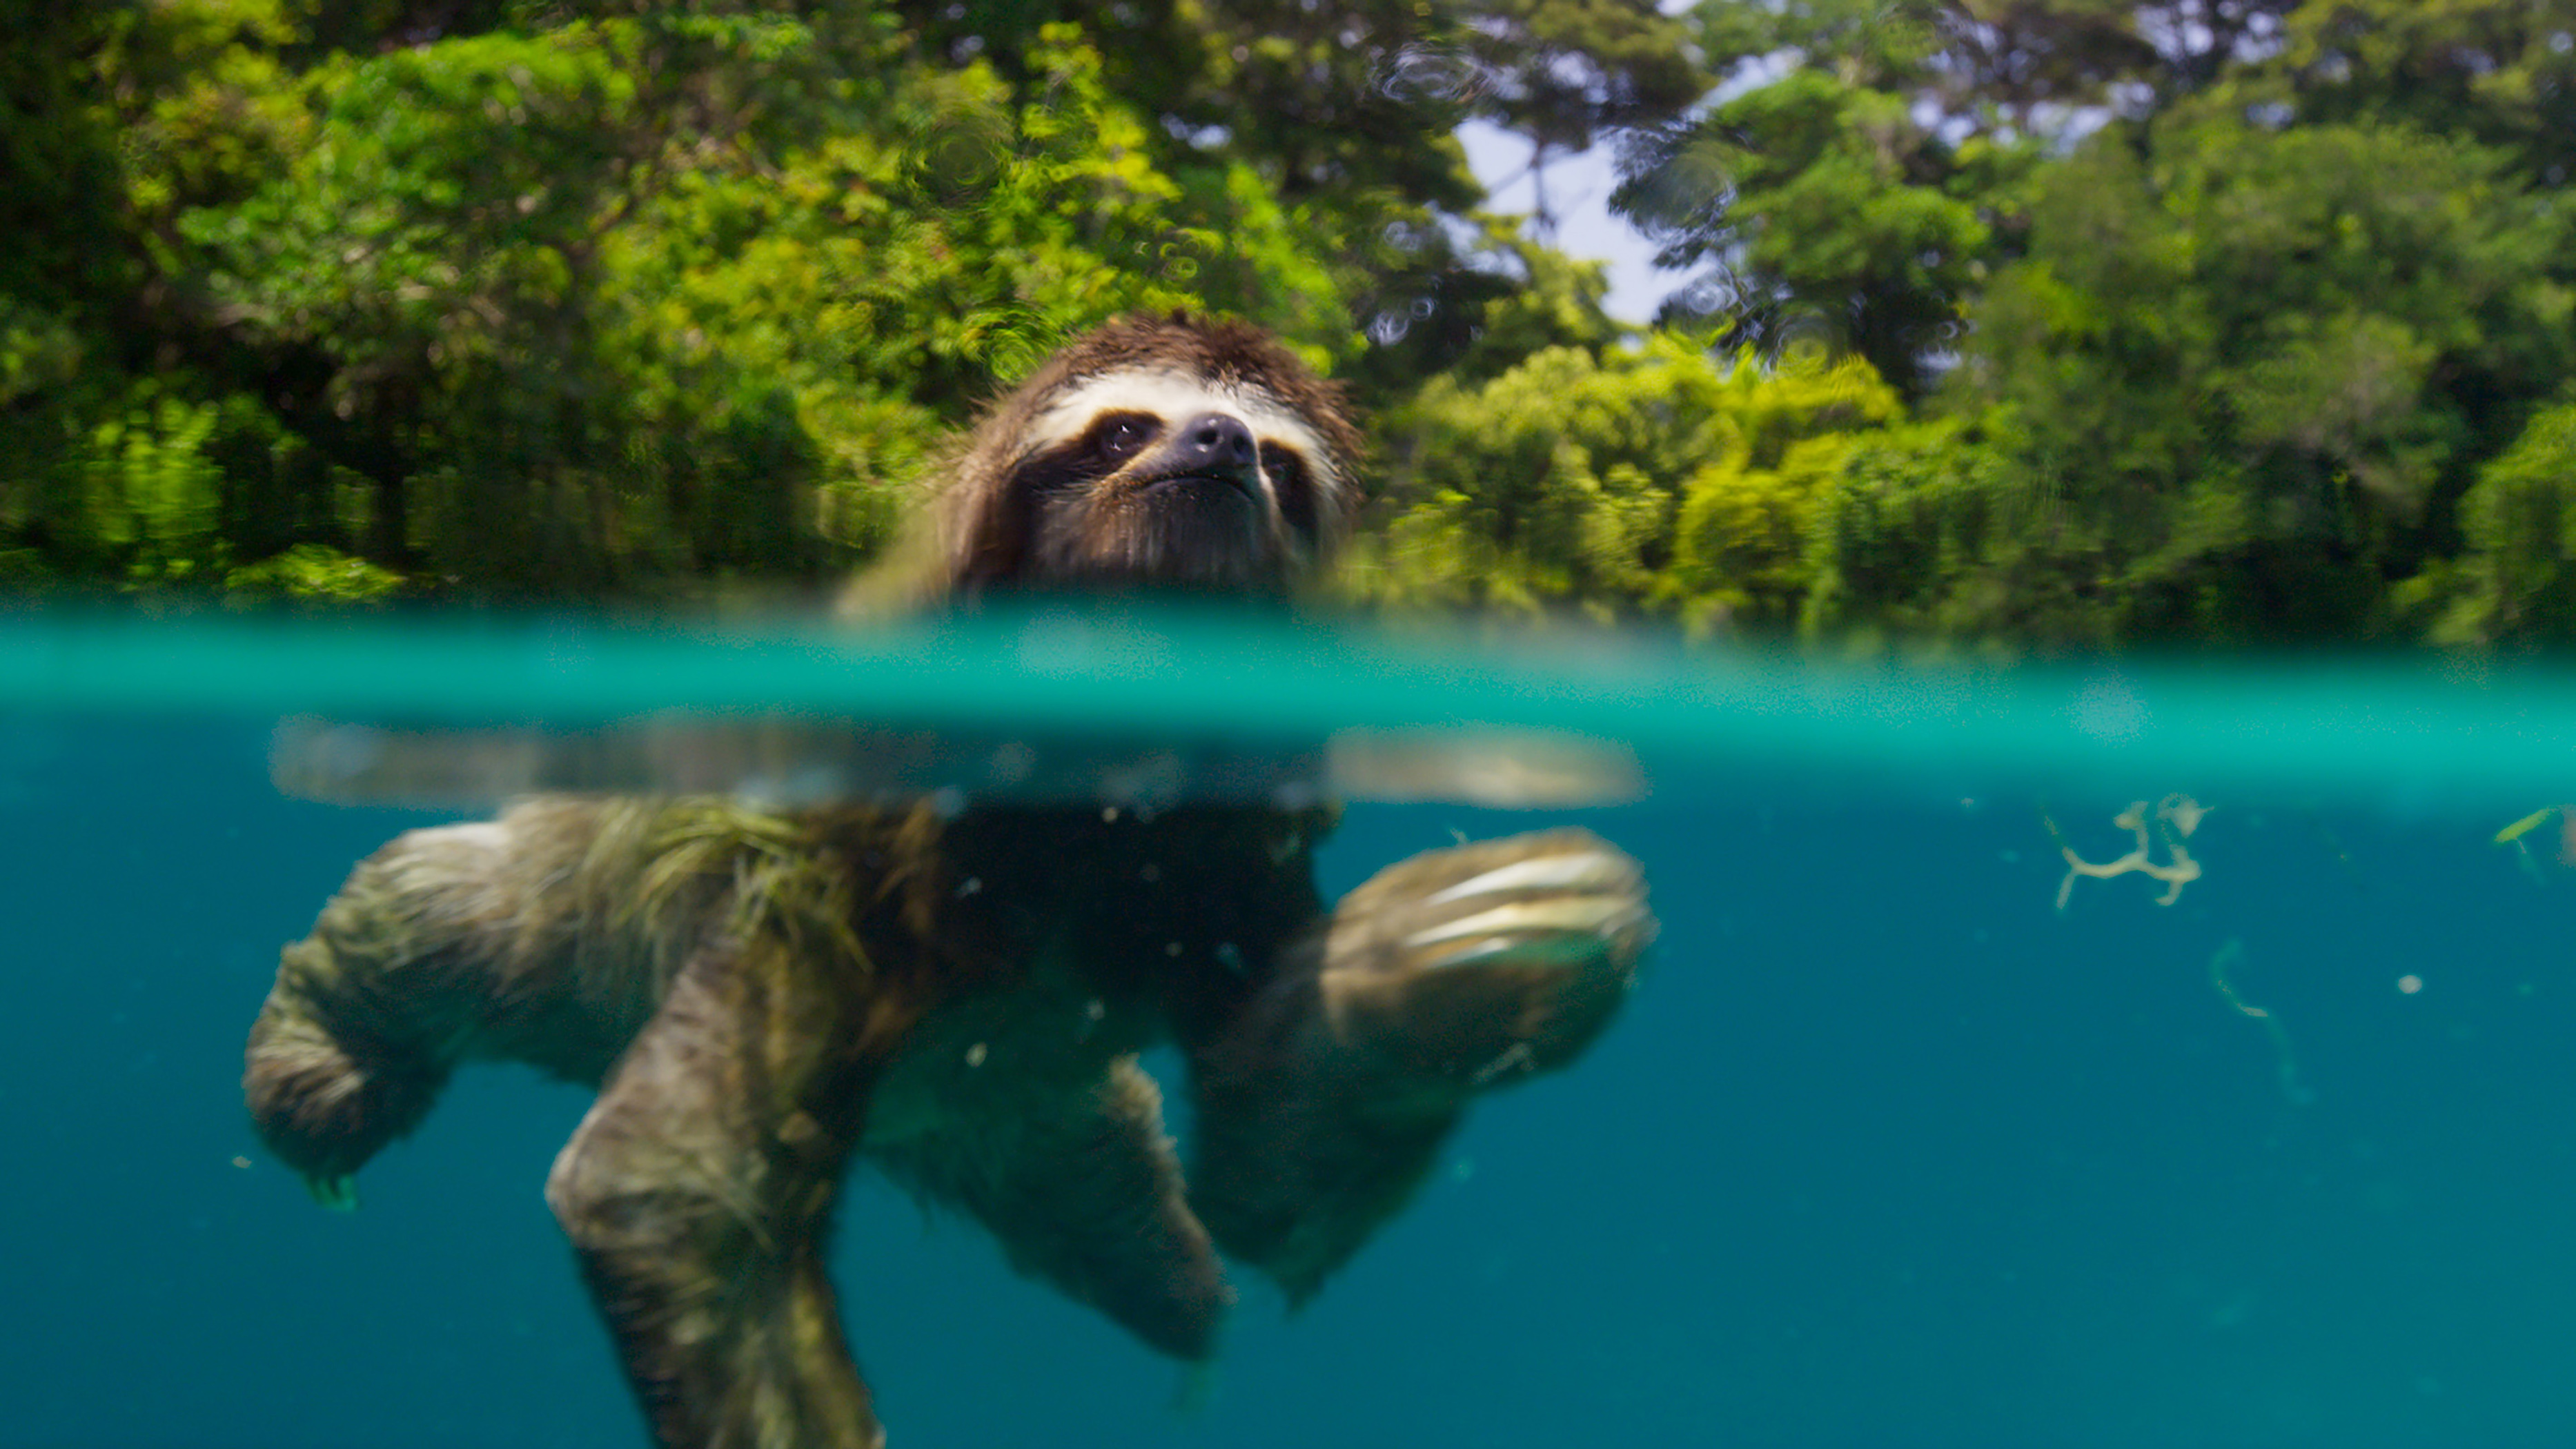 David Attenborough's documentaries may soon be seen as the